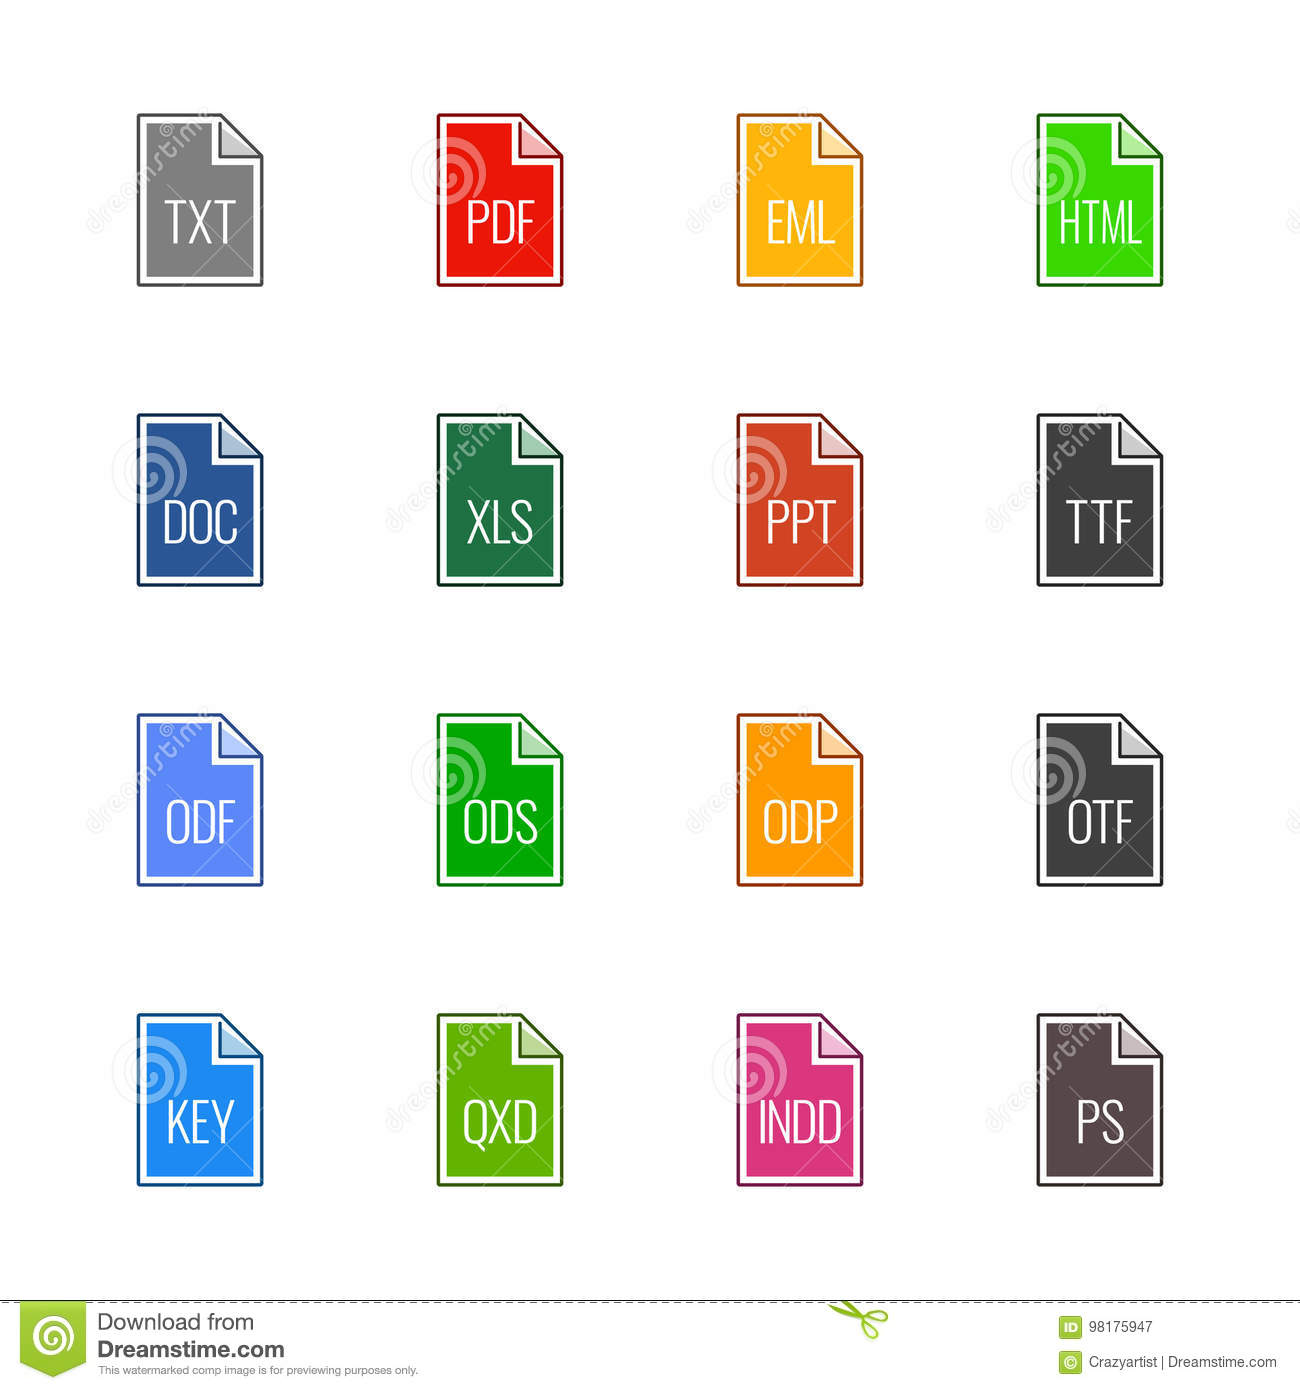 File type icons: Texts, fonts and page layout - Linne UL Color